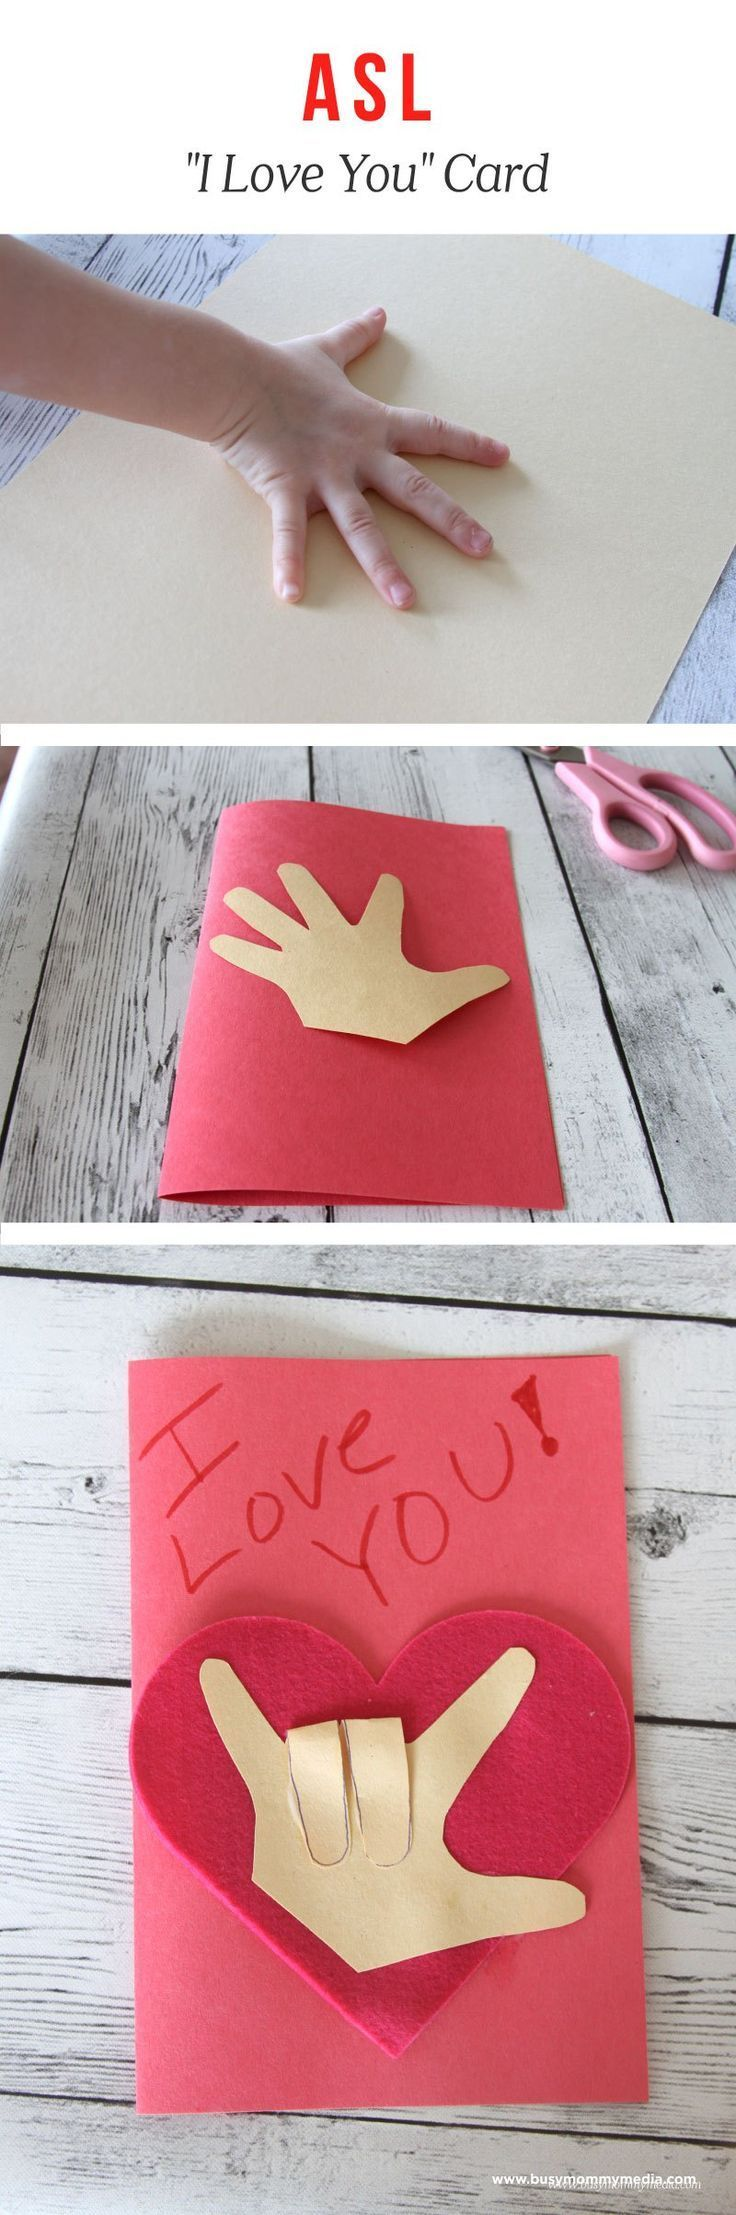 17 best ideas about Valentines For Kids – Homemade Valentine Cards for School